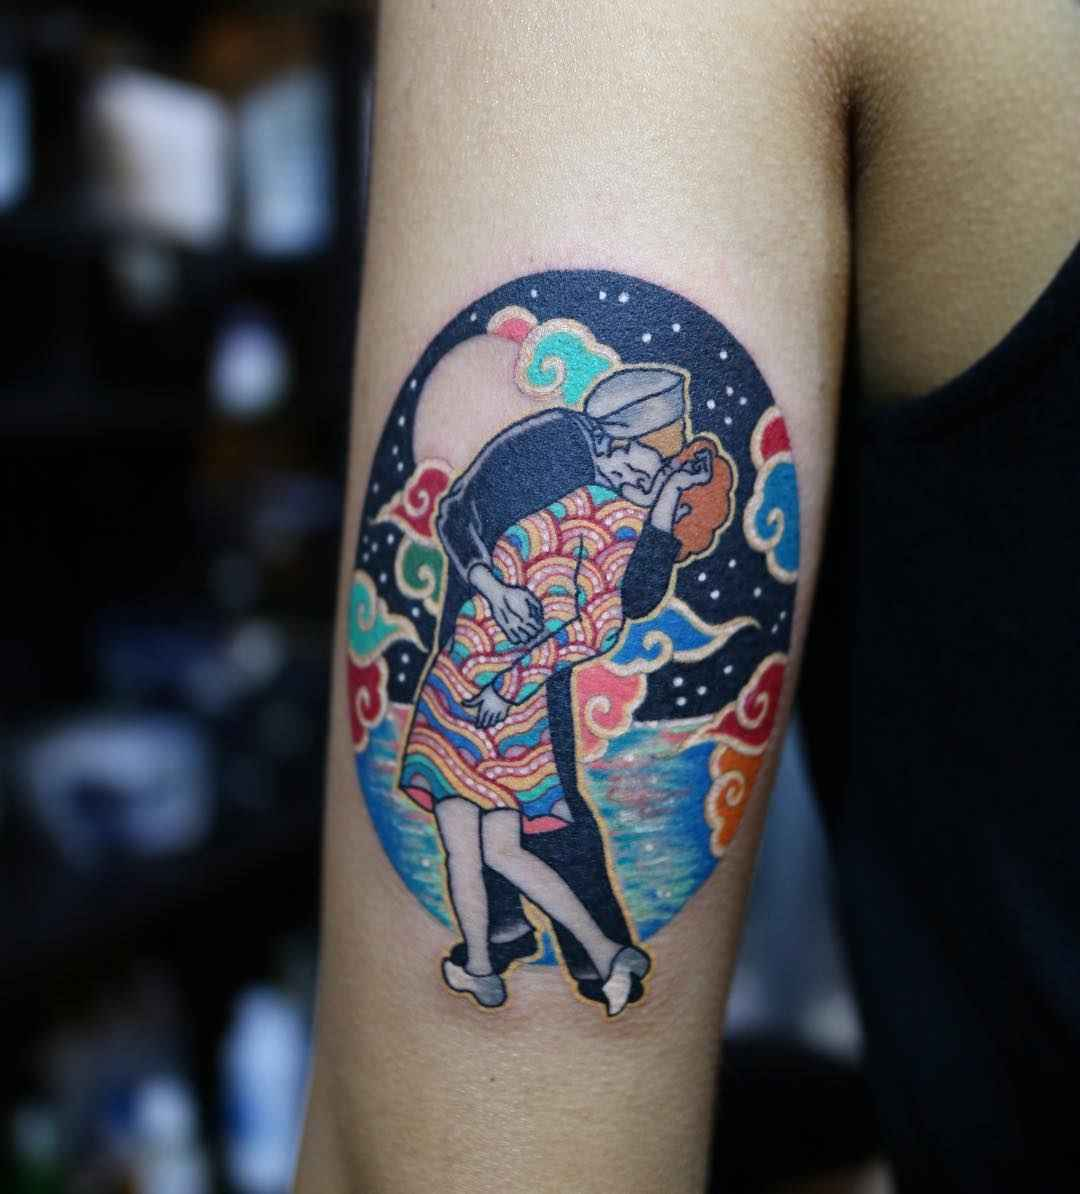 Korean traditional tattoo by Pitta